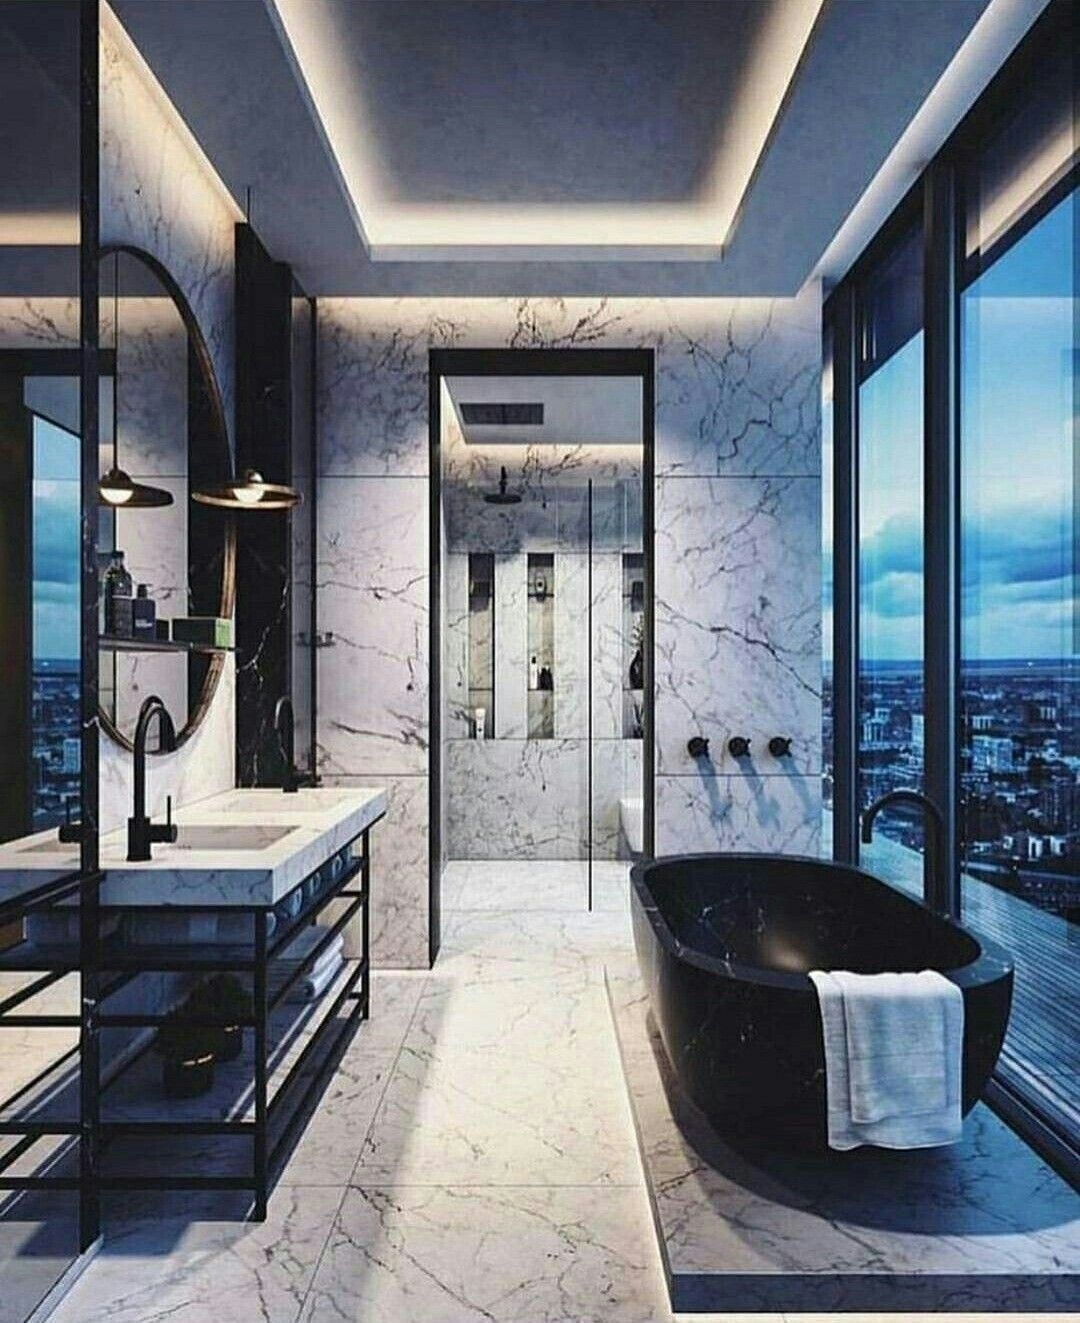 Fresh Contemporary And Luxury Bathroom Design Ideas For Your Home See More Clic Small Bathroom Remodel Designs Bathroom Remodel Designs Bathroom Design Luxury